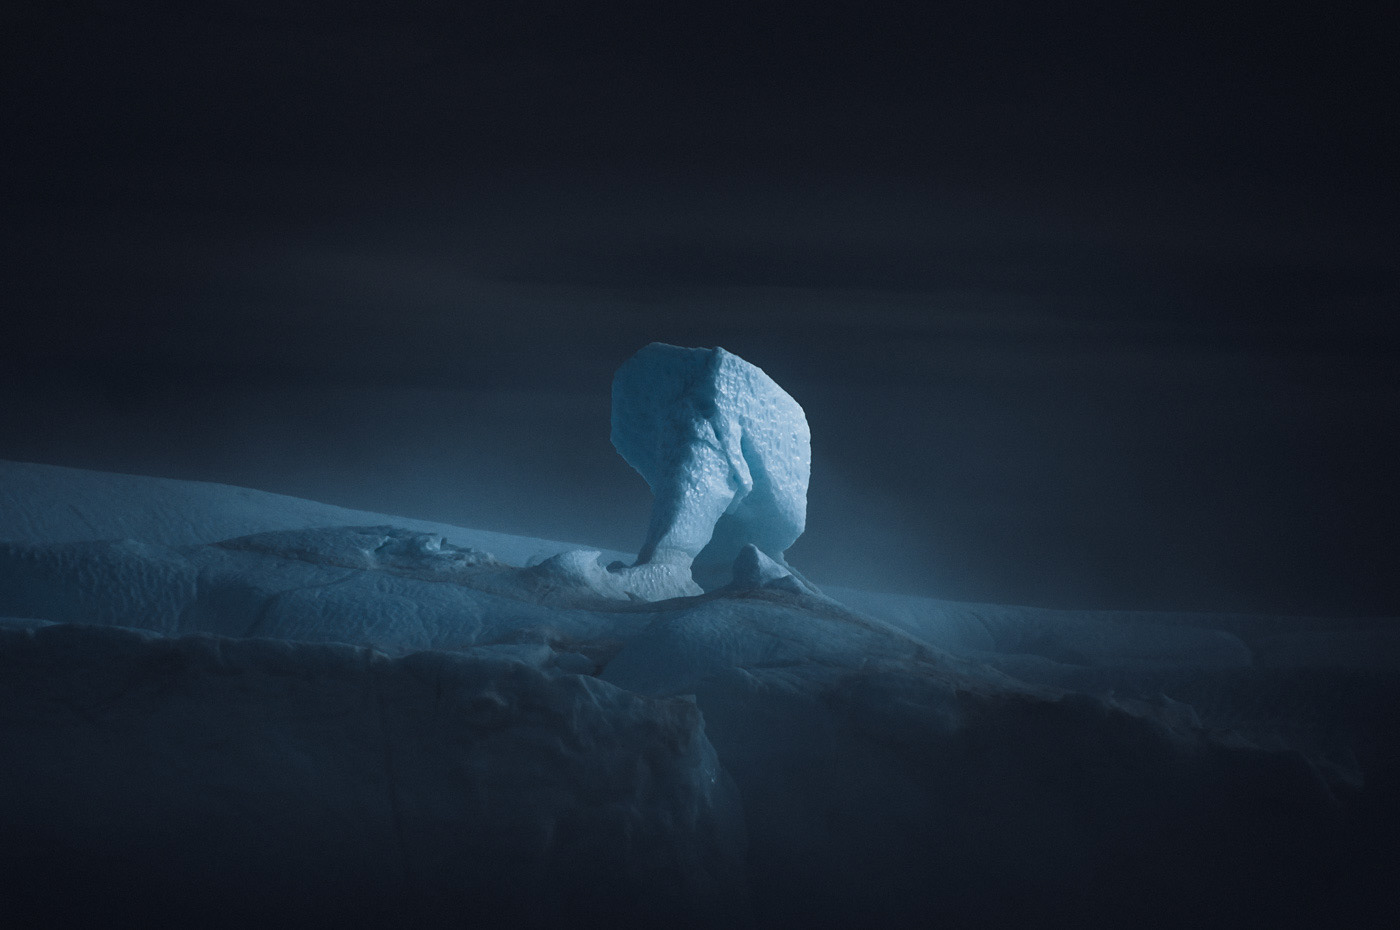 The Diverse and Rugged Beauty of Nordic Glaciers and Icebergs Captured by Jan Erik Waider